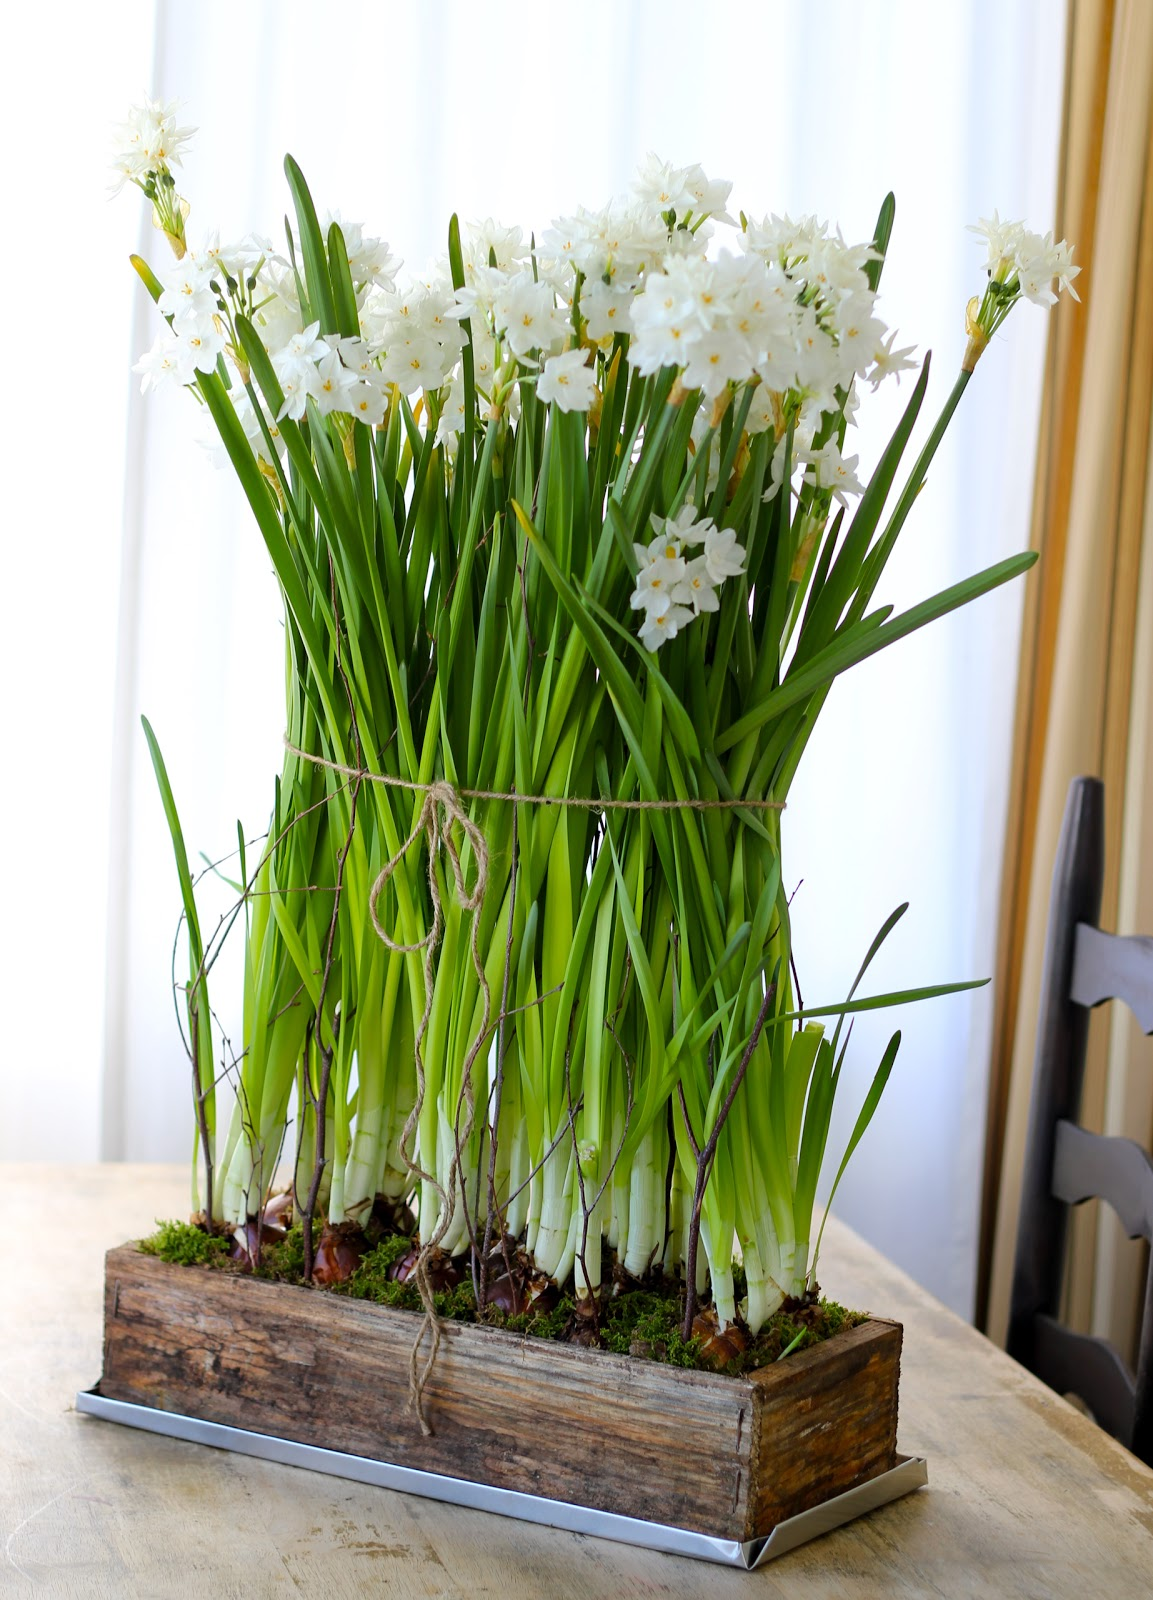 Jenny steffens hobick january freshen up paperwhites planting box as im in the process of de holidayizing my house im moving the dark and cozies out and all of my light and fresh in im replacing my woodland china mightylinksfo